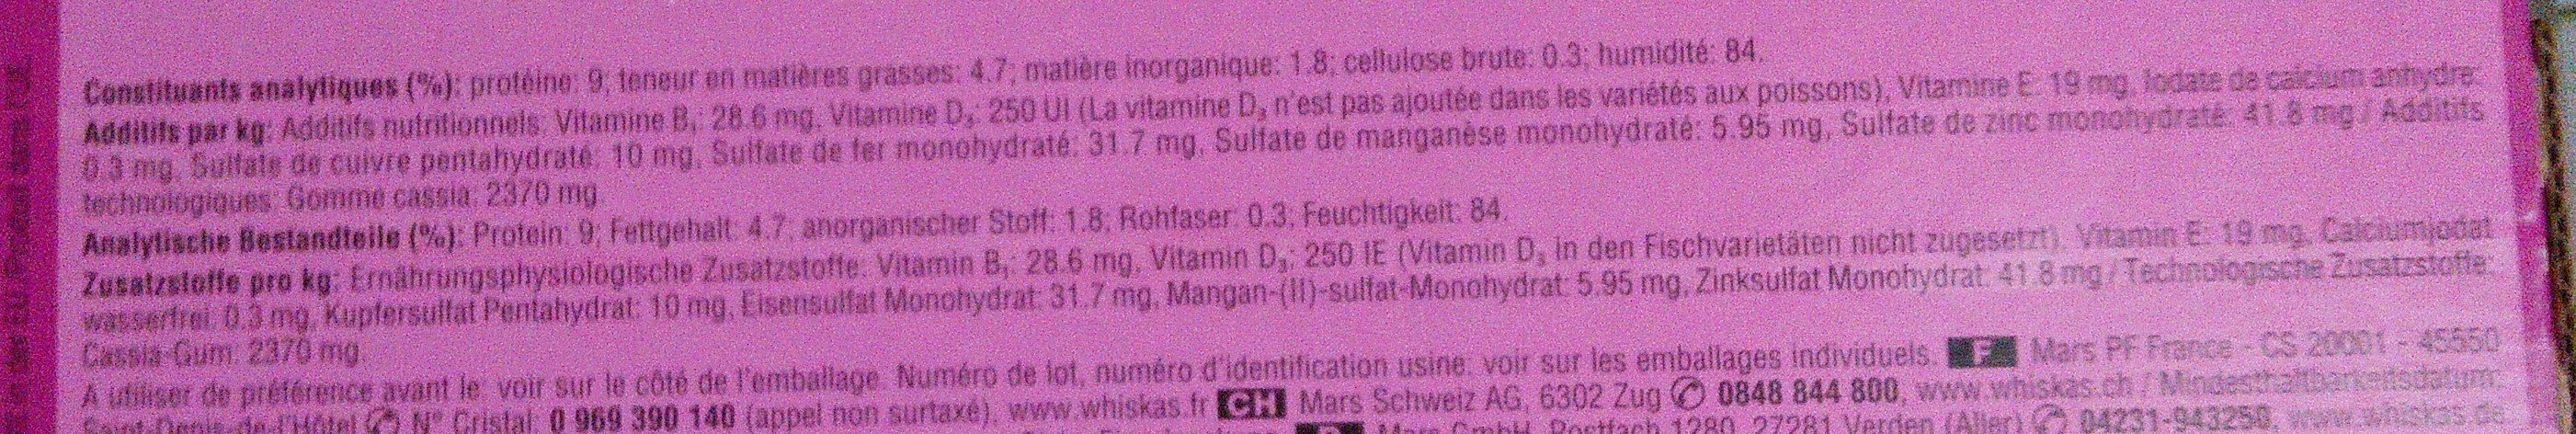 maxi pack selection mixte en gelée - Nutrition facts - fr